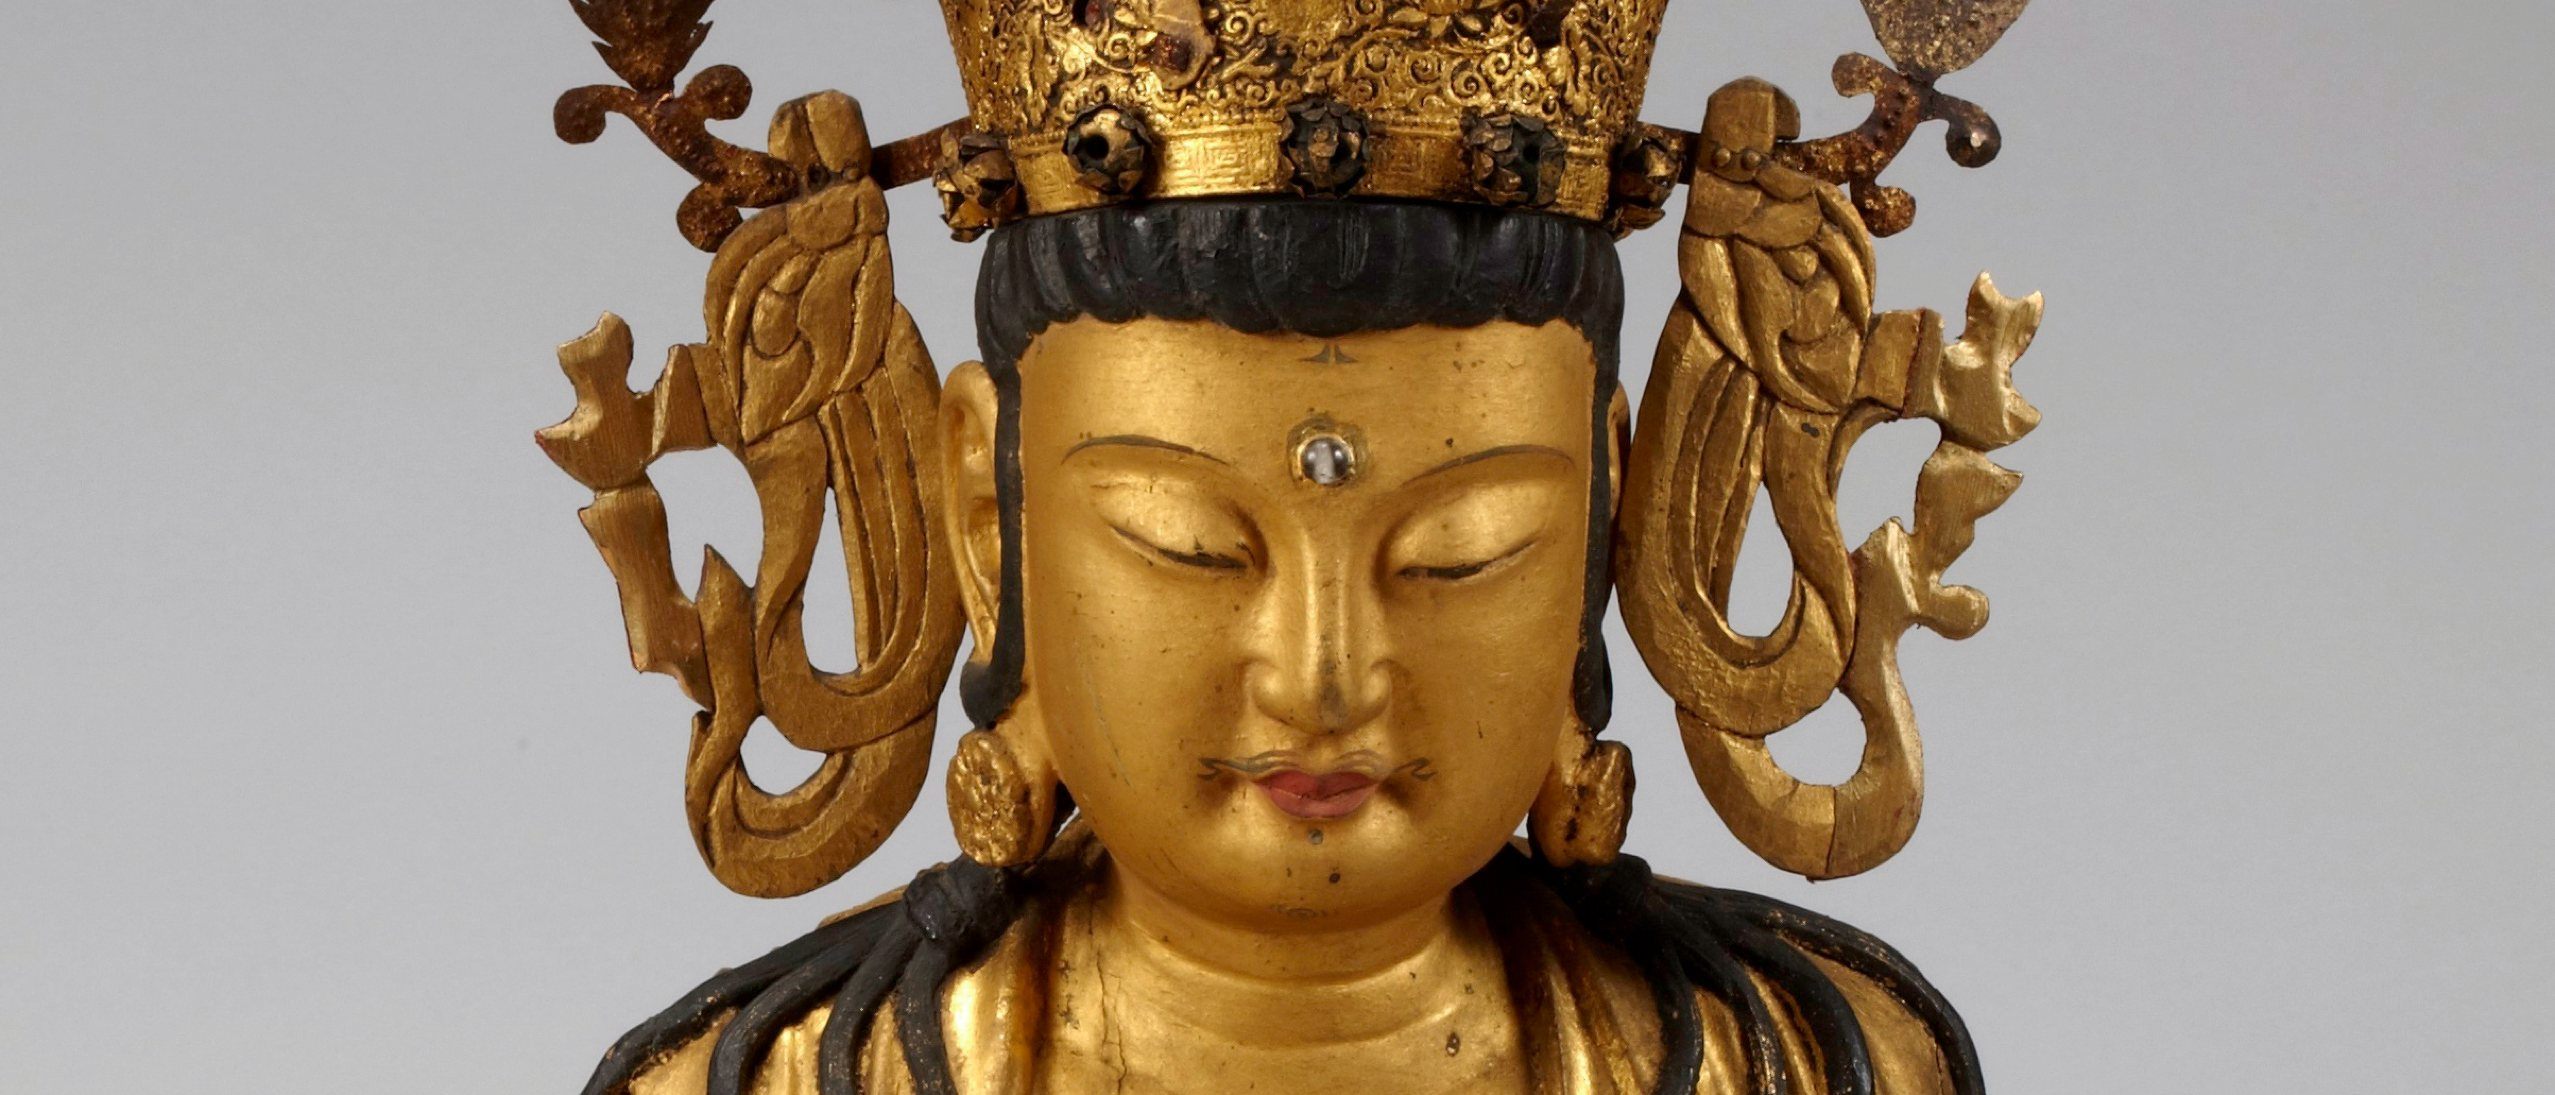 gilt statue of a Bodhisattva in a large headress